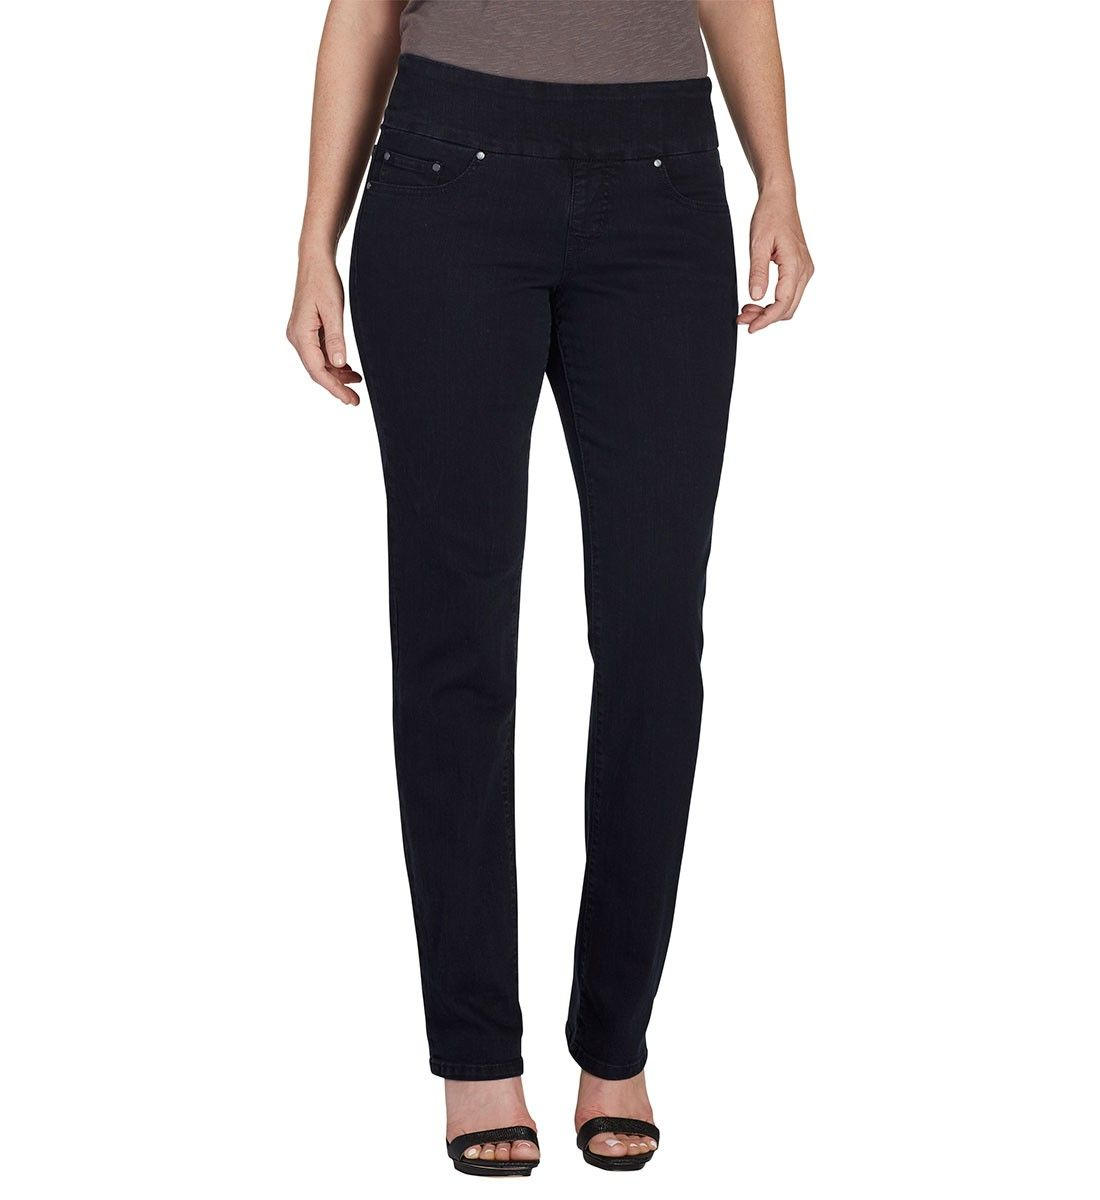 27052e13bab Petite Peri Straight - Supreme Denim - Black Void